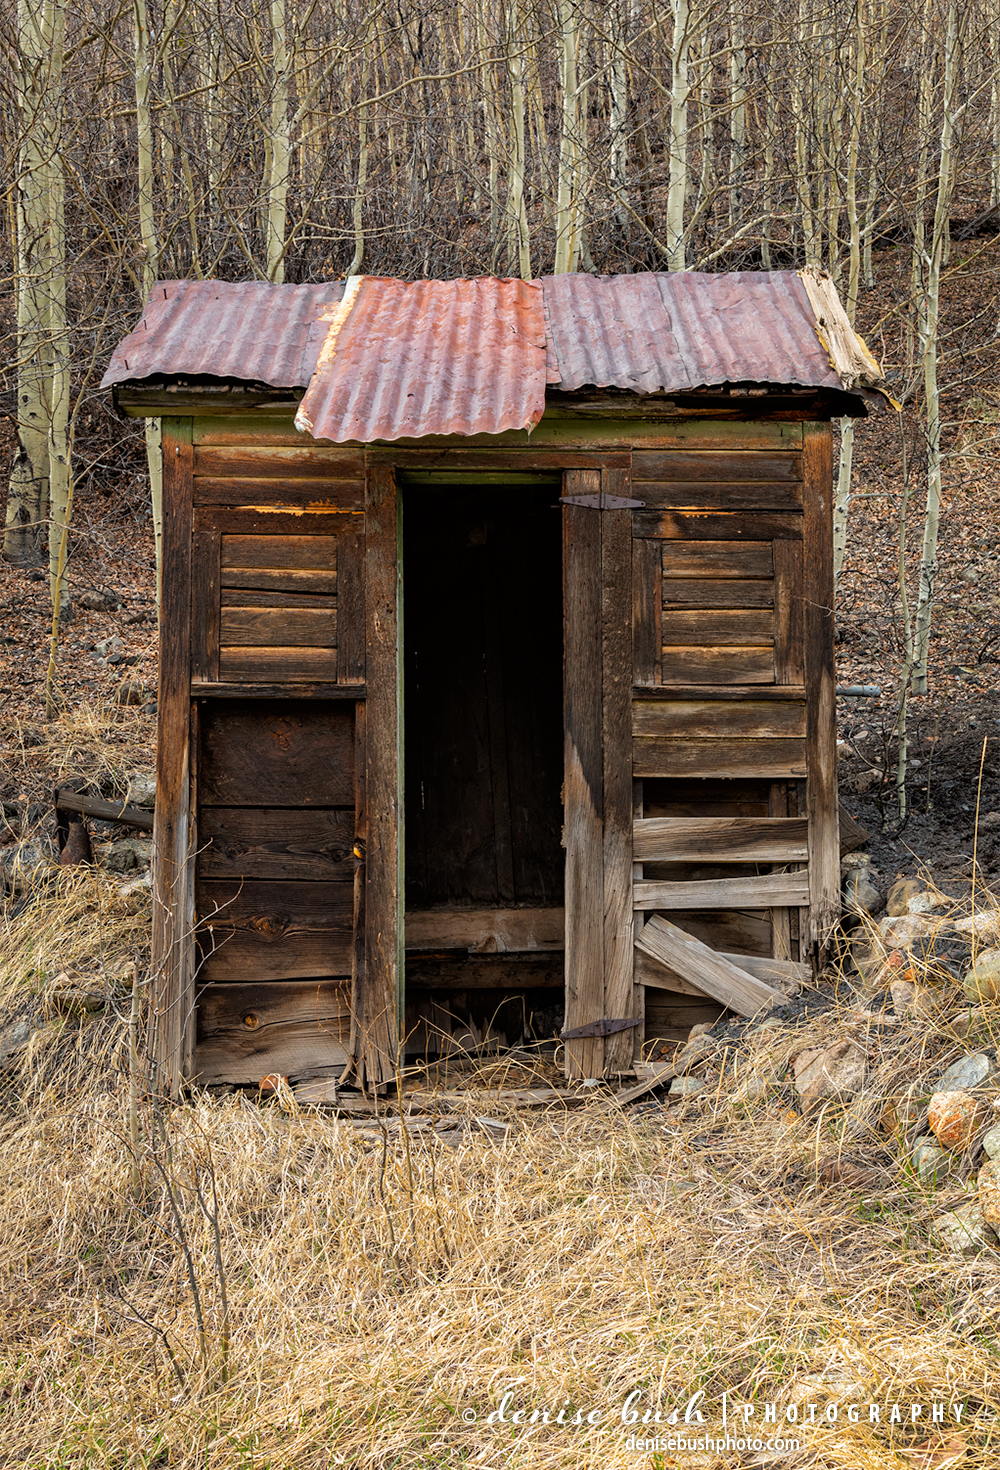 Weathered wood and a rusty tin roof make this outhouse, built for two a nostalgic find.